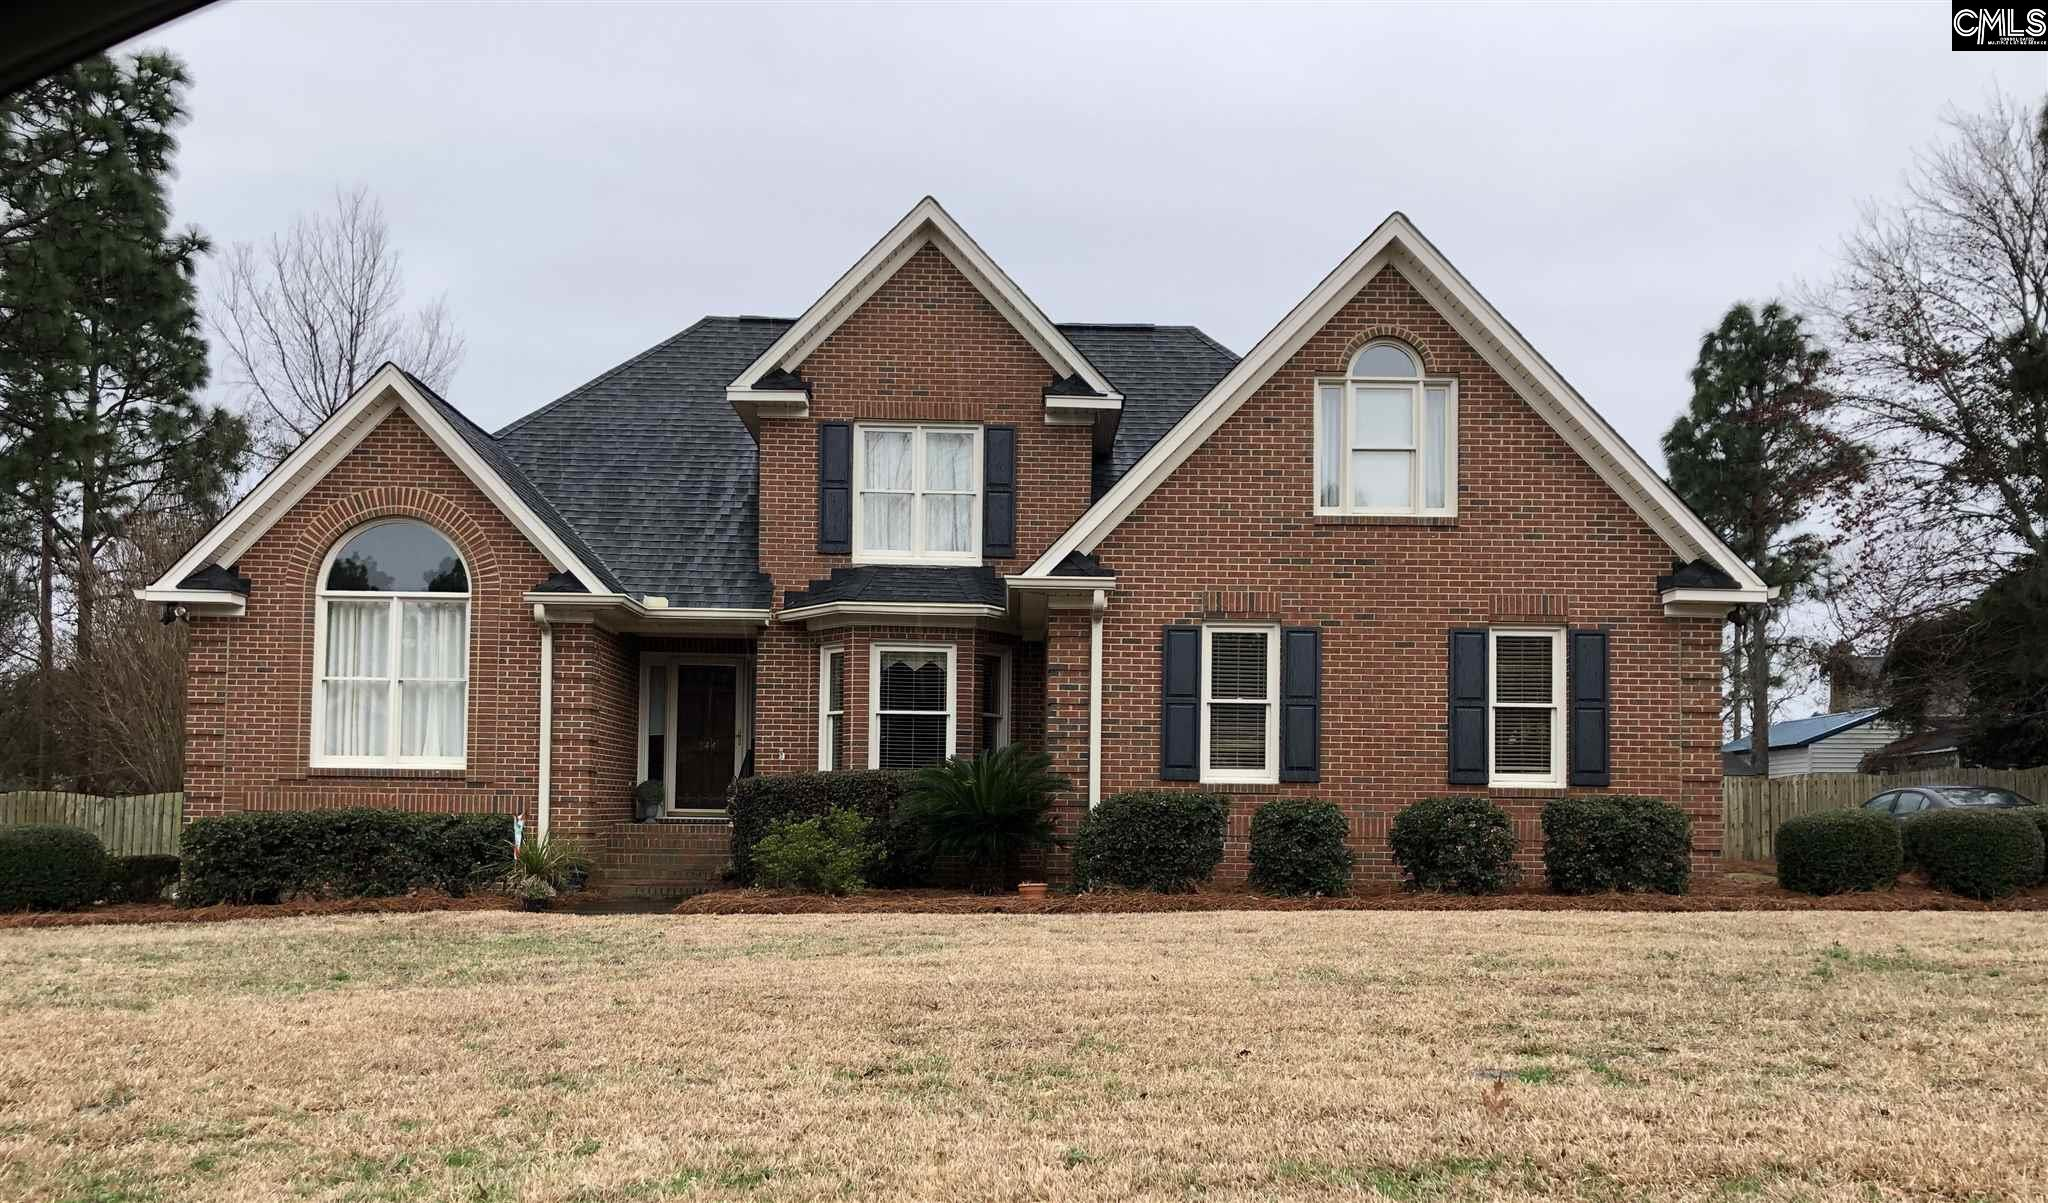 144 Hounds Run Lexington, SC 29072